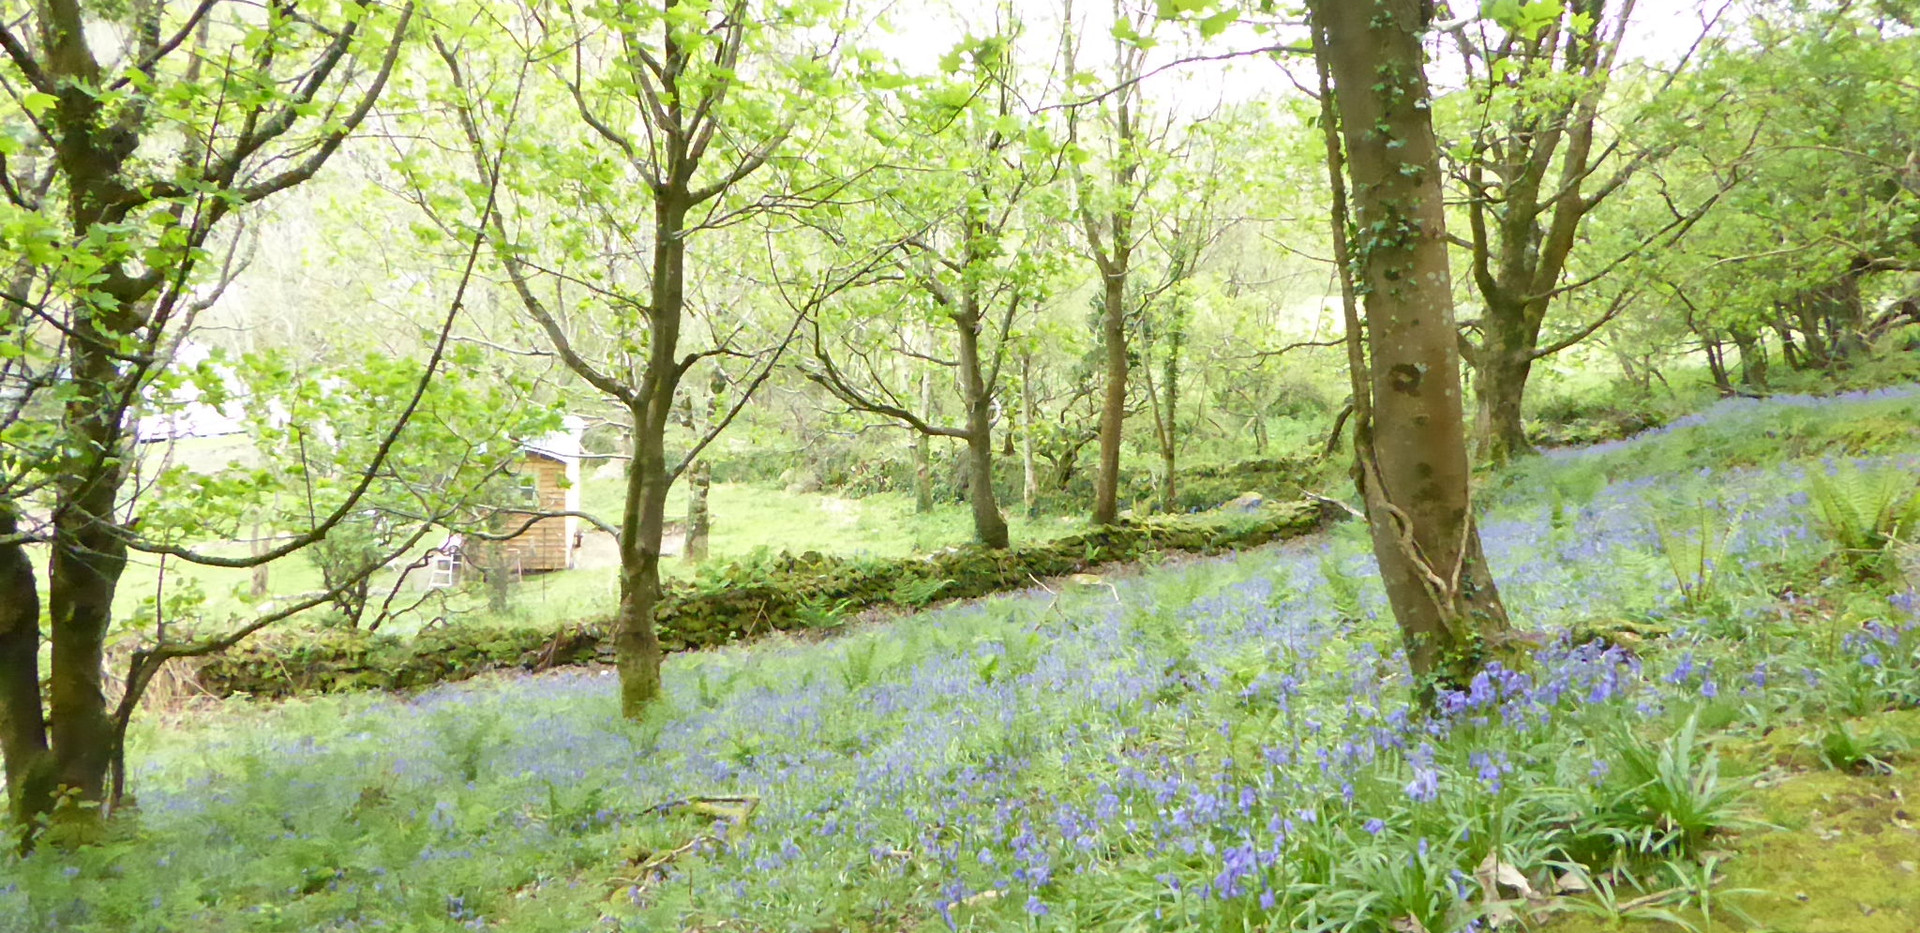 Bluebell woods at Lynton